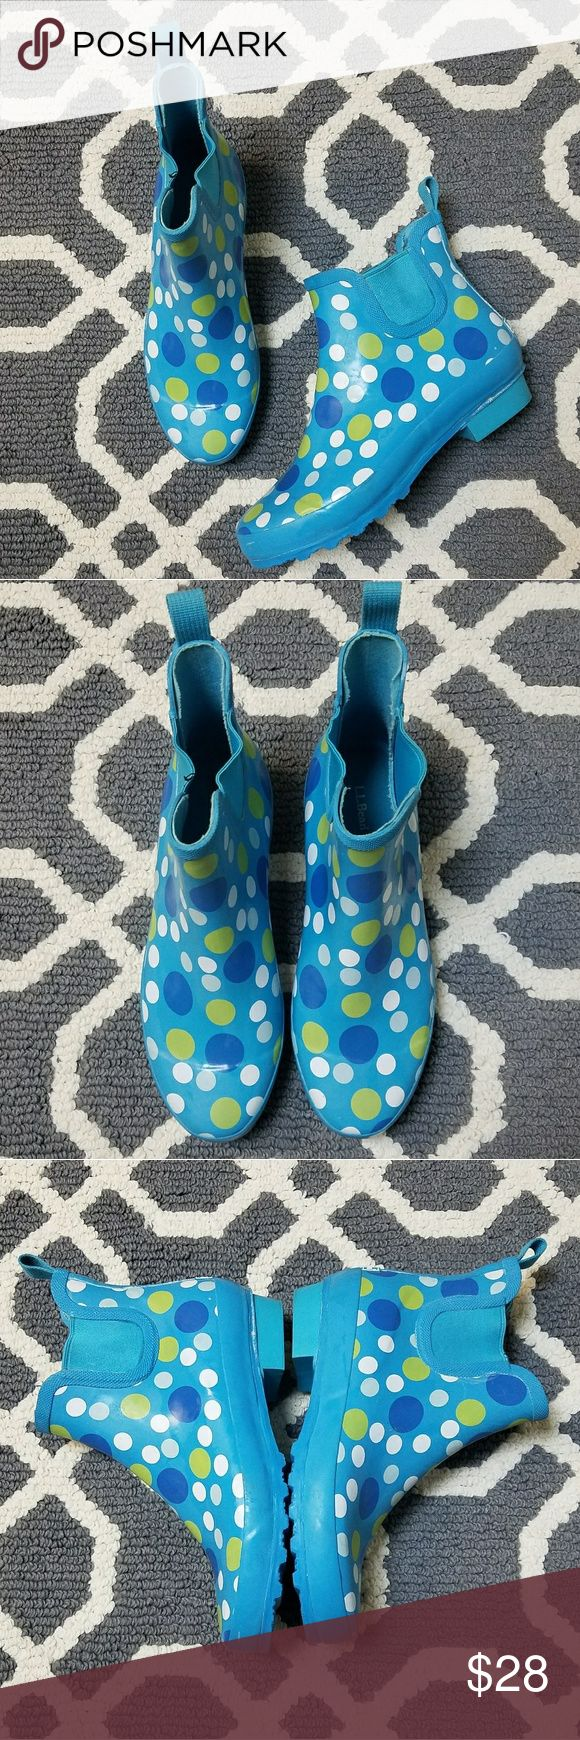 L.L. Bean Ankle Blue Polka Dot Rain Boots L.L. Bean Ankle Height Rain Boots  Bright blue with white, dark blue, and green polka dots  Some wear on the inside, but no holes, and the soles and outside are in great condition   Women's Size 9 L.L. Bean Shoes Winter & Rain Boots